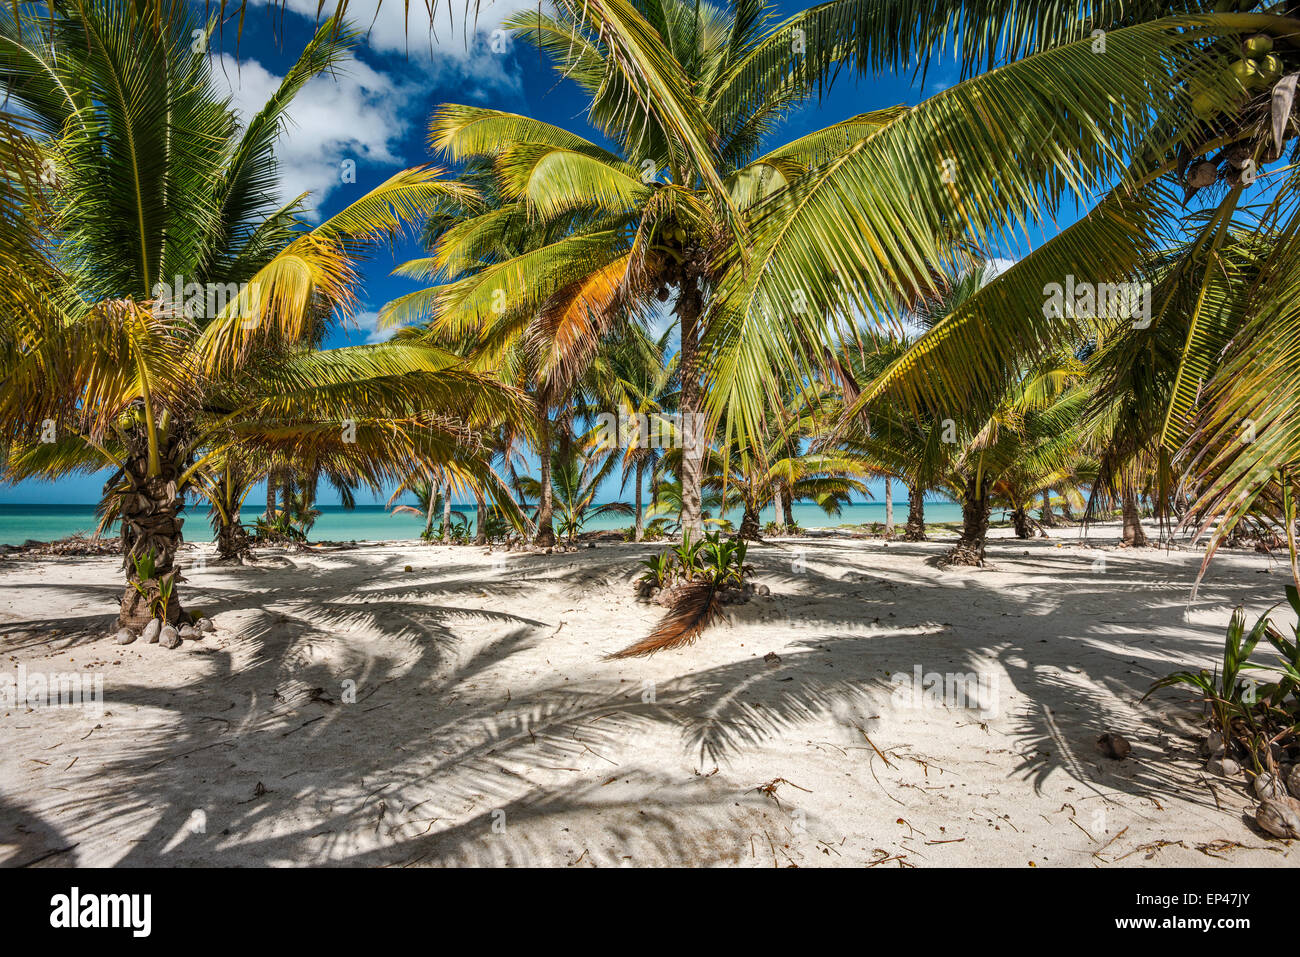 Palm trees on beach, Punta Xochen near Champoton over Bay of Campeche, Gulf of Mexico, Campeche state, Mexico Stock Photo